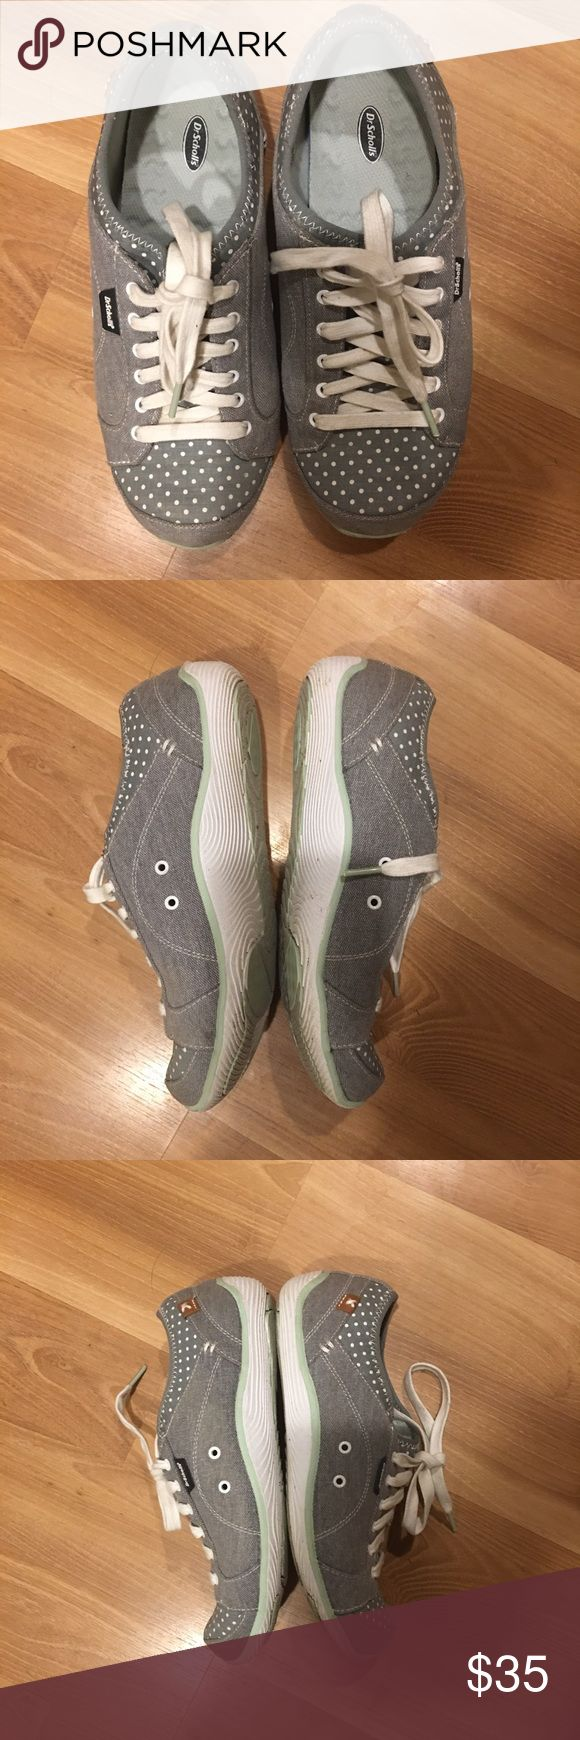 Dr.Scholls sneakers size 8 wide .Good Very comfortable sneakers from dr.scholl's size 8 , canvas light green. Very good used condition. Dr. Scholl's Shoes Sneakers